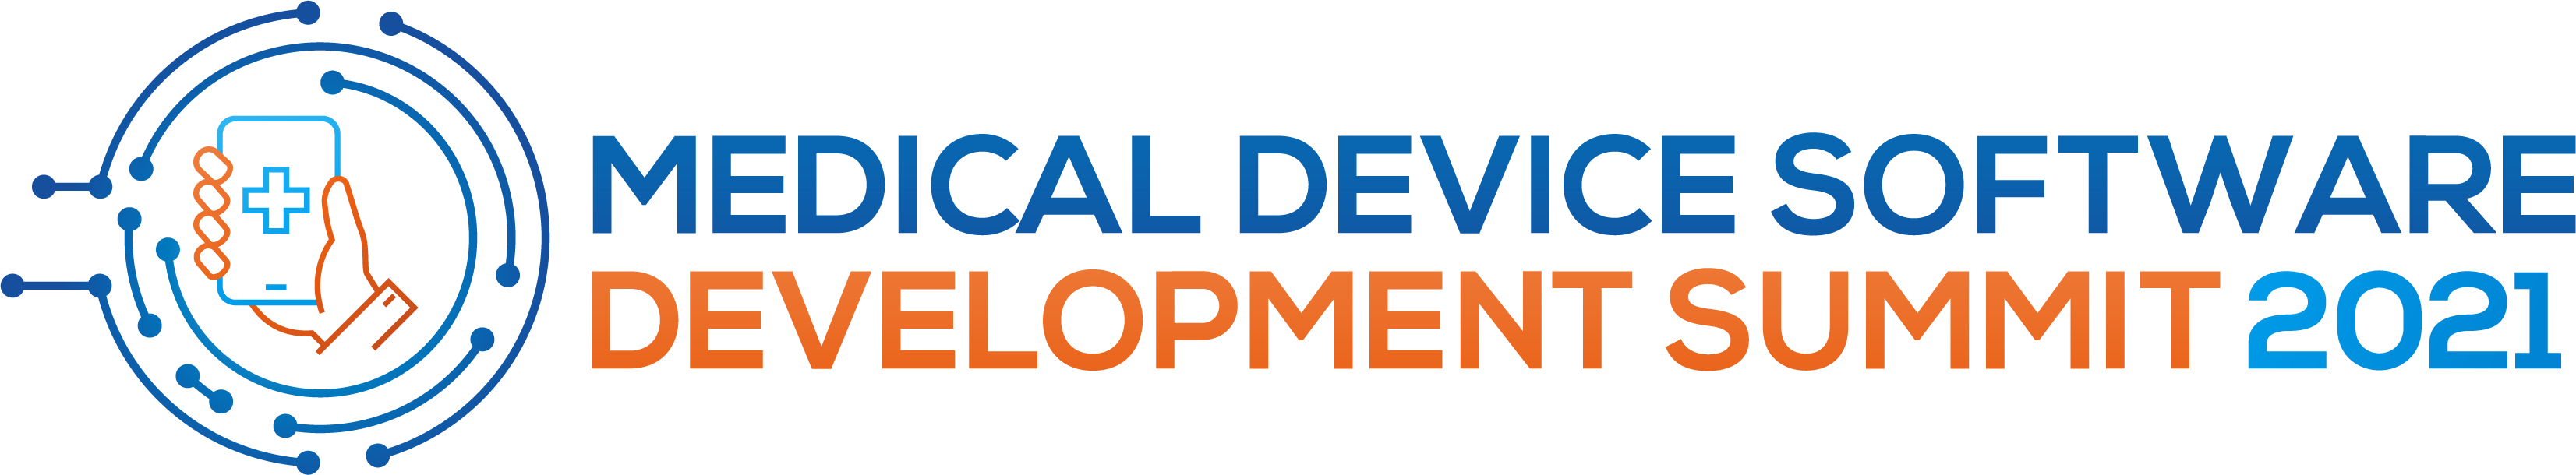 HW201208 Medical Device Software Development Summit logo